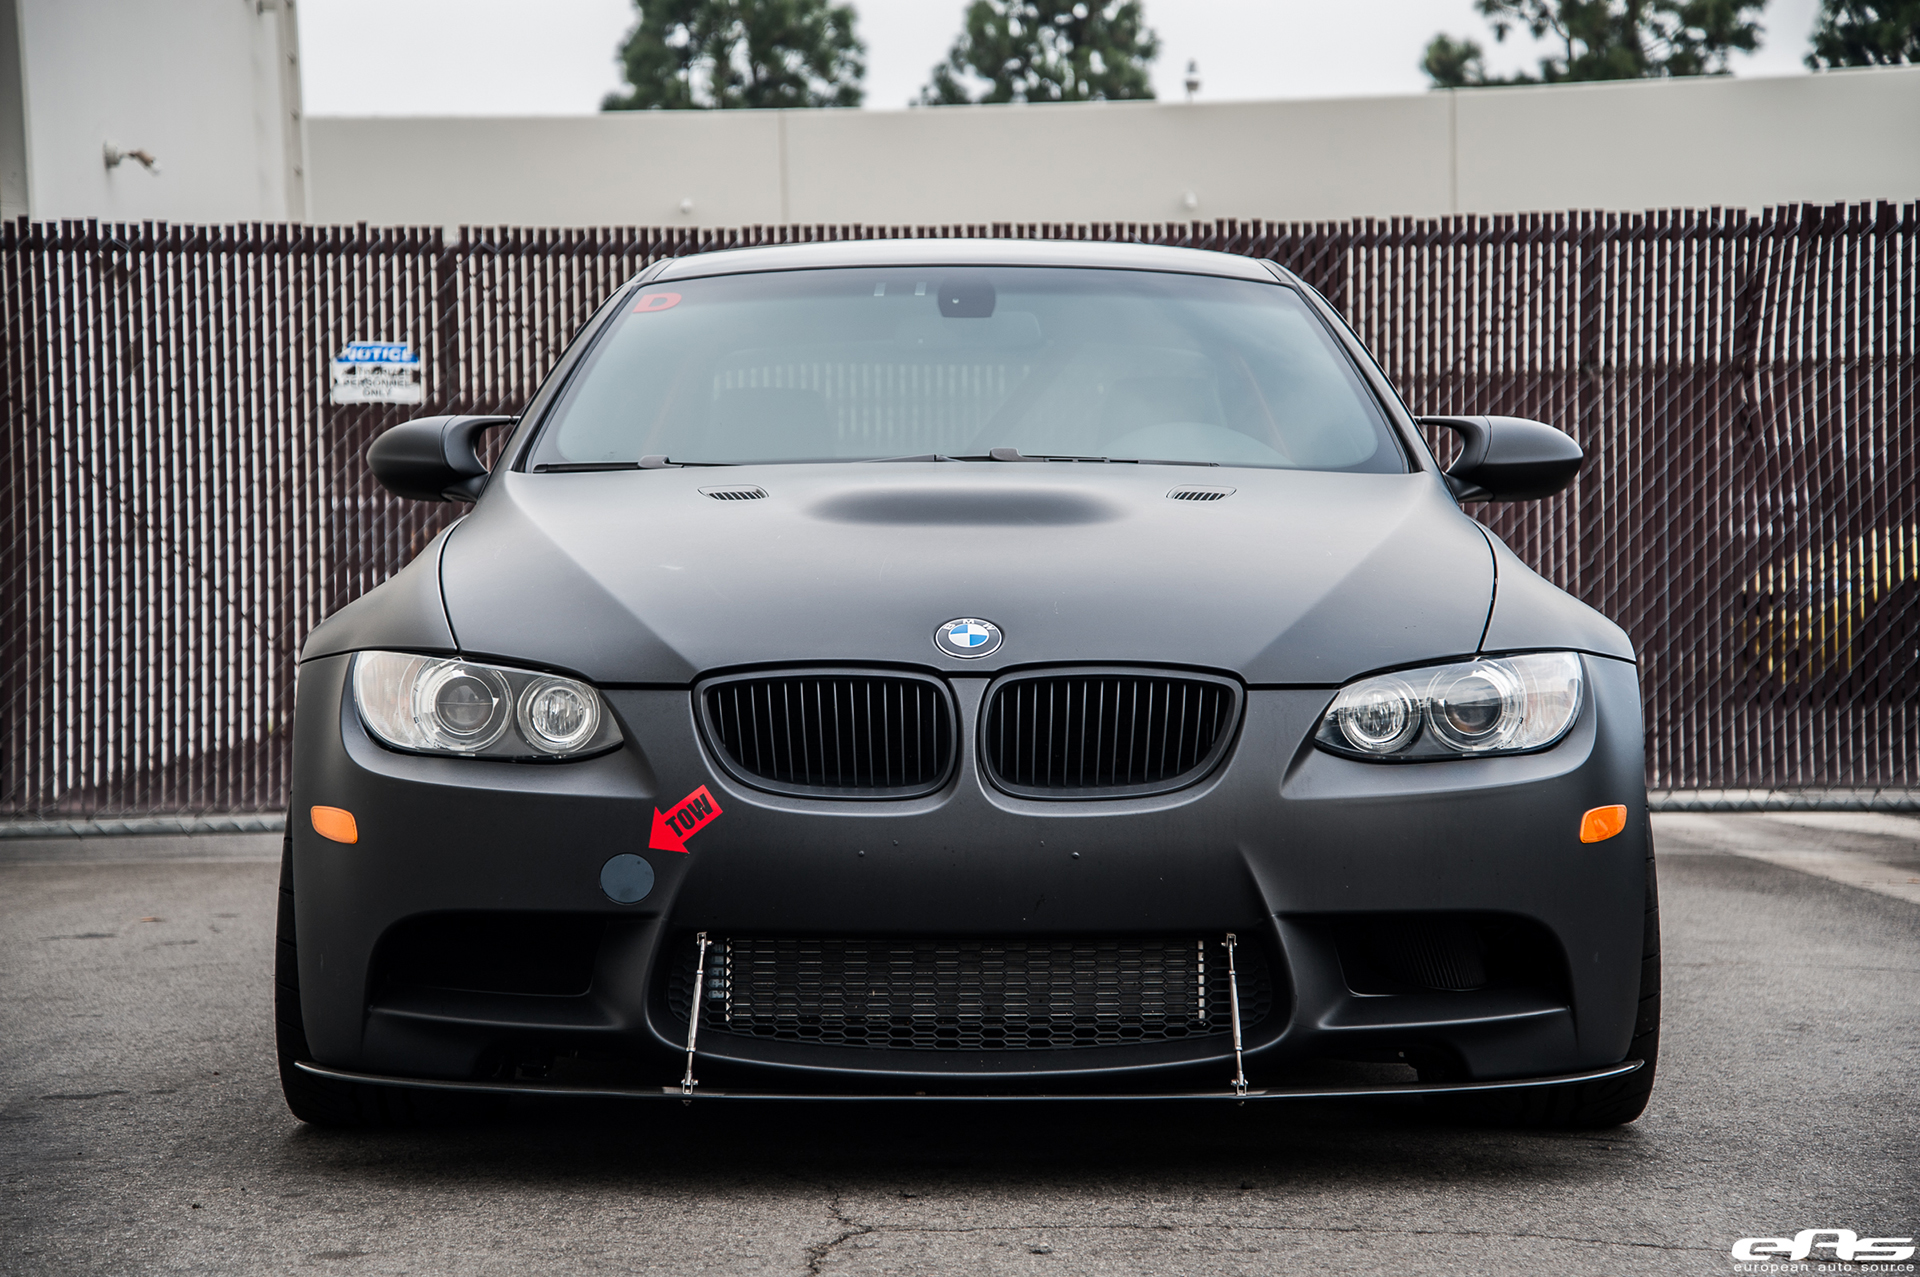 Matte Black Bmw >> A Matte Black Beast Of A BMW M3 By European Auto Source